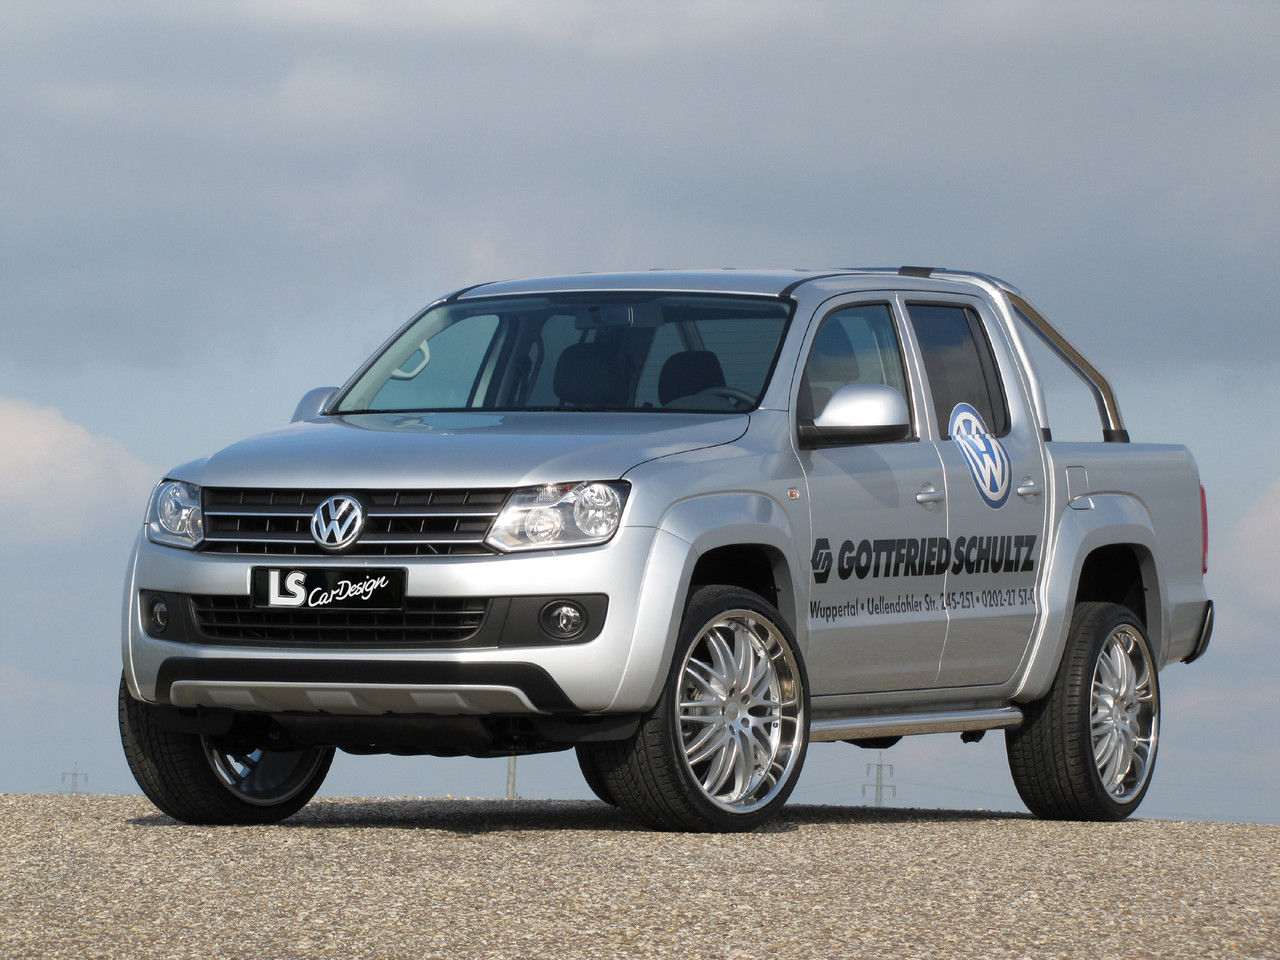 news alufelgen vw amarok mit 23zoll ls sport felgen 305. Black Bedroom Furniture Sets. Home Design Ideas